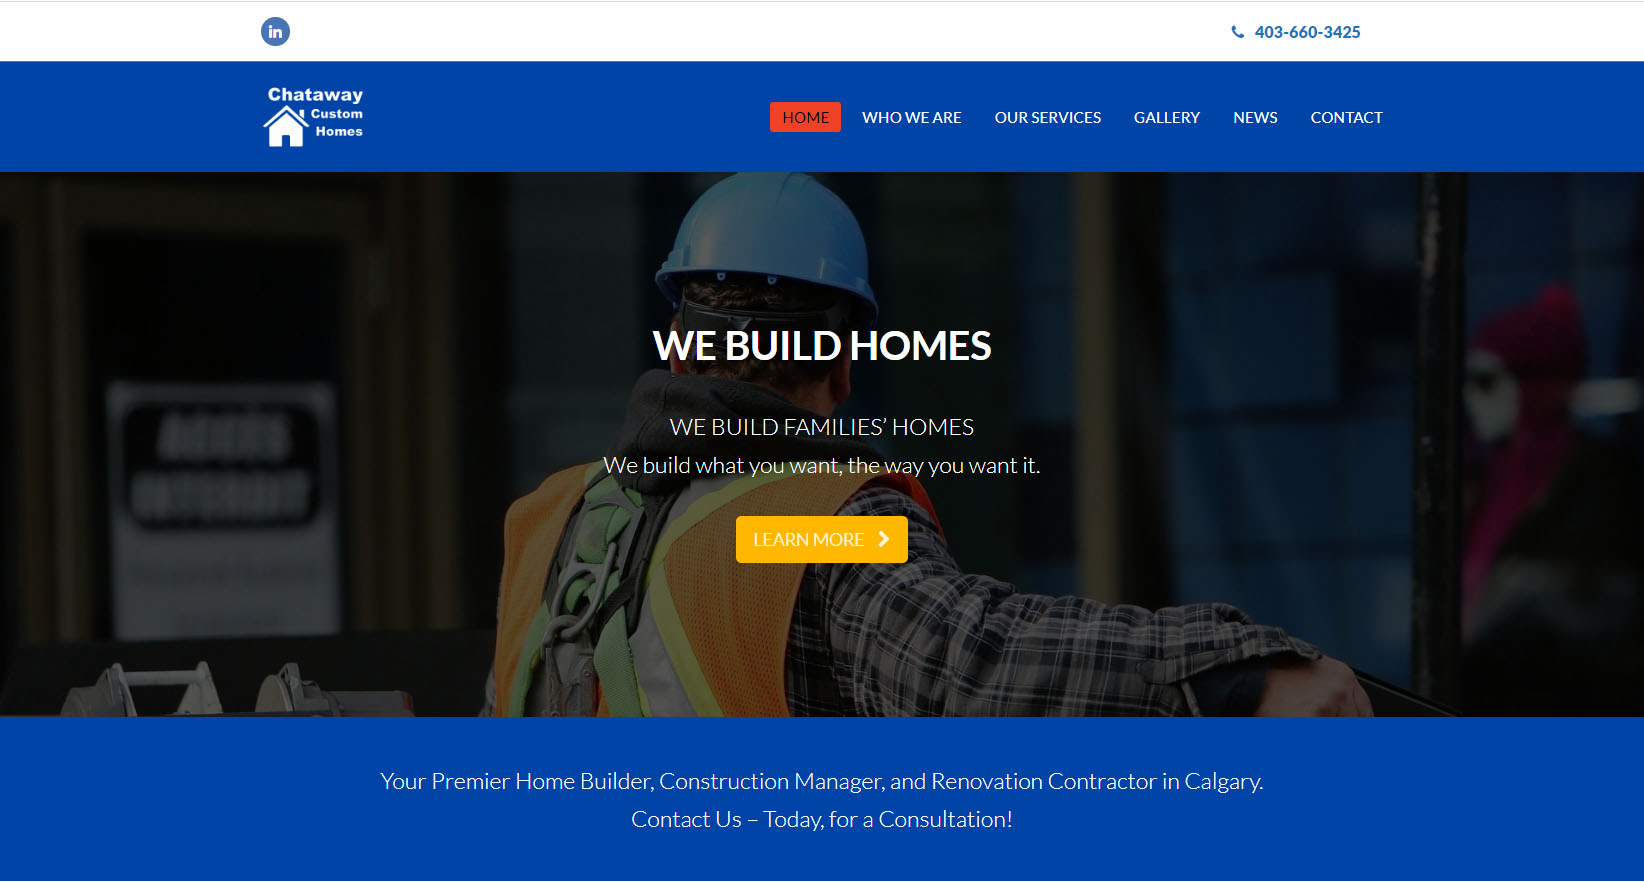 Chataway Homes desktop site